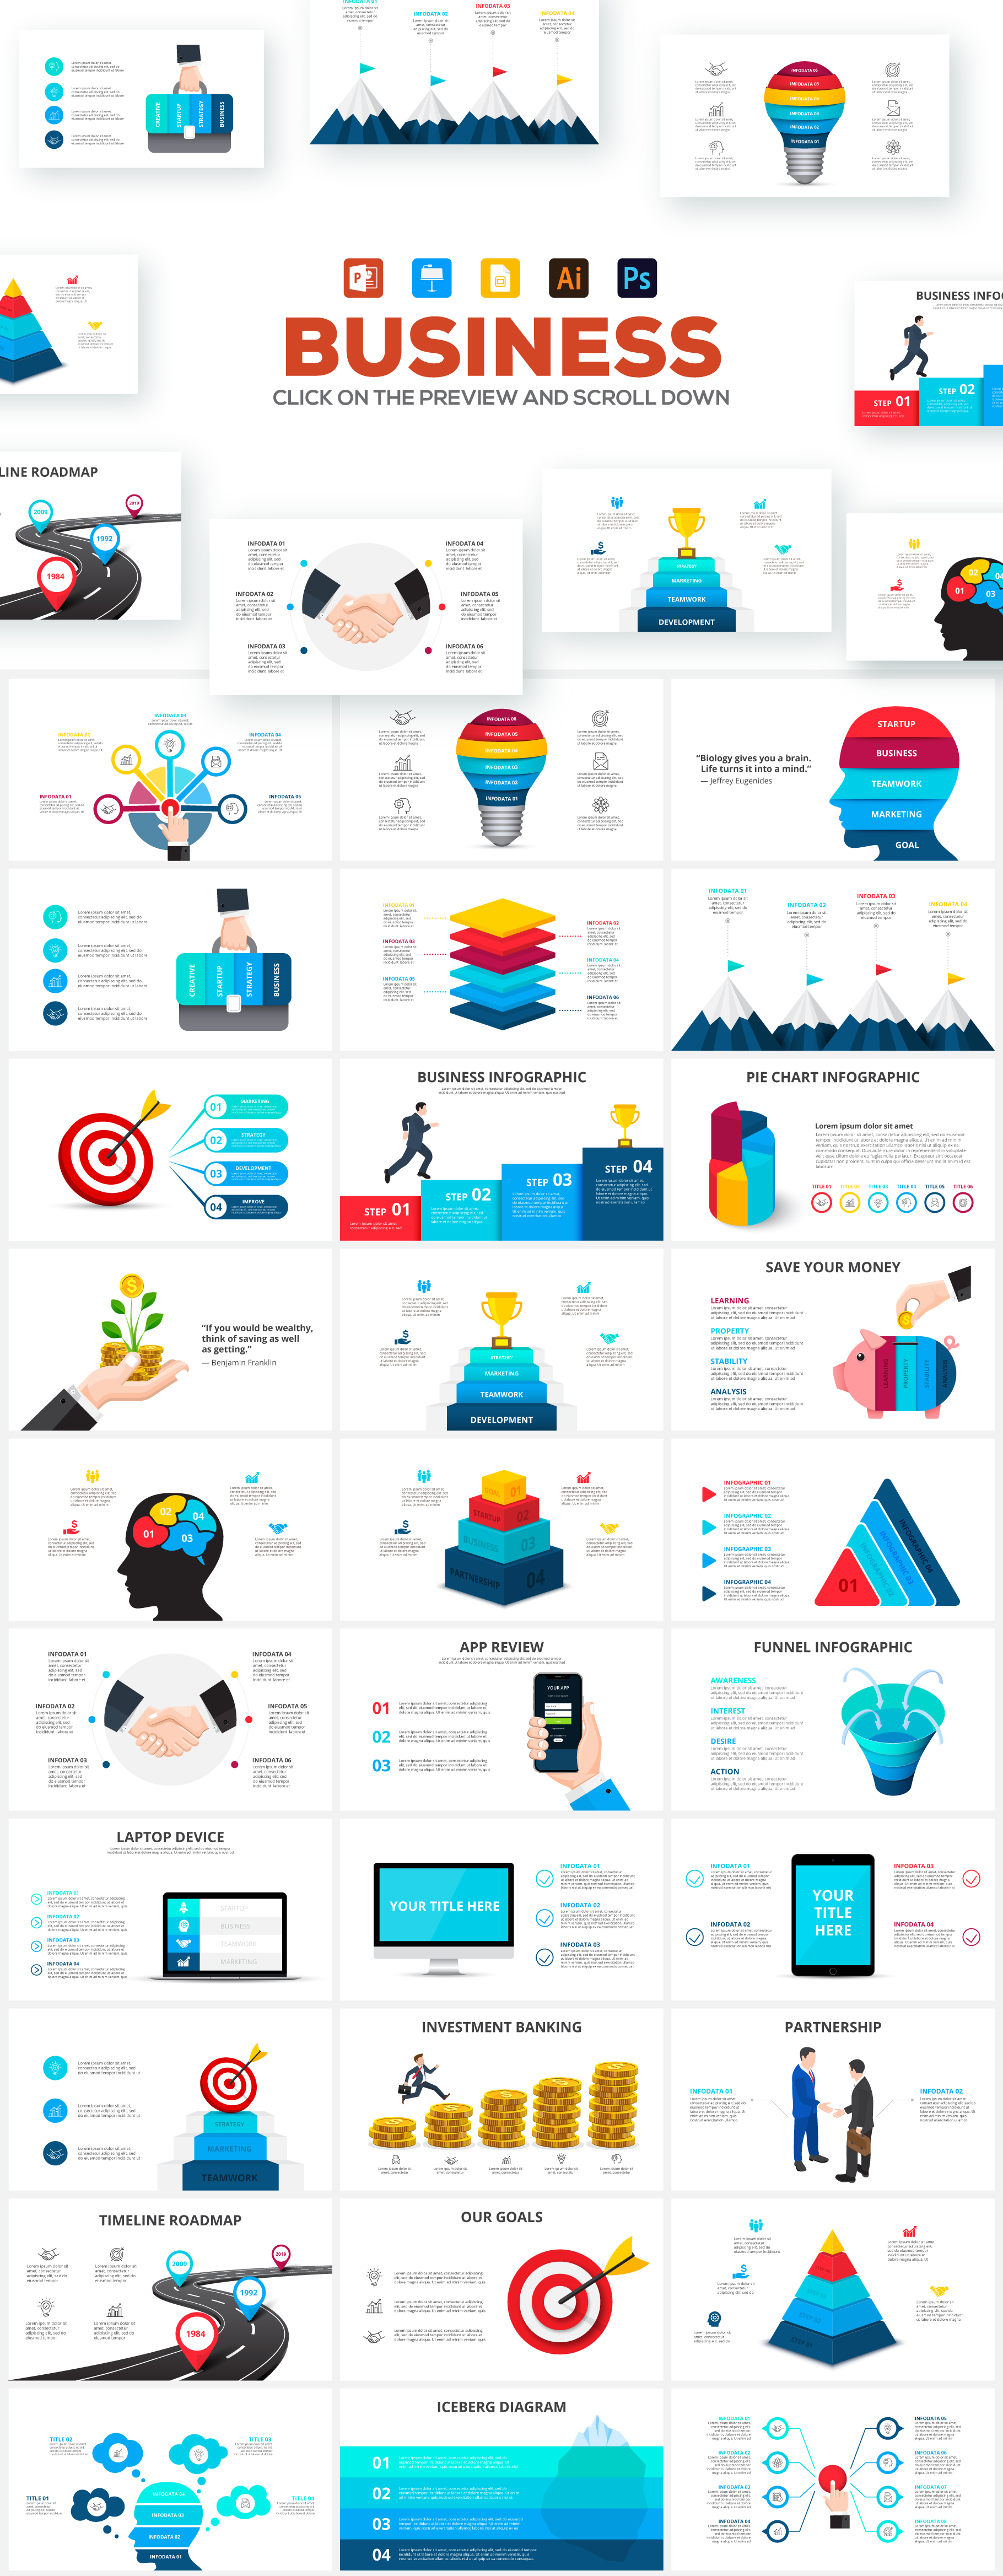 2600 Massive Animated Powerpoint Bundle - Business all